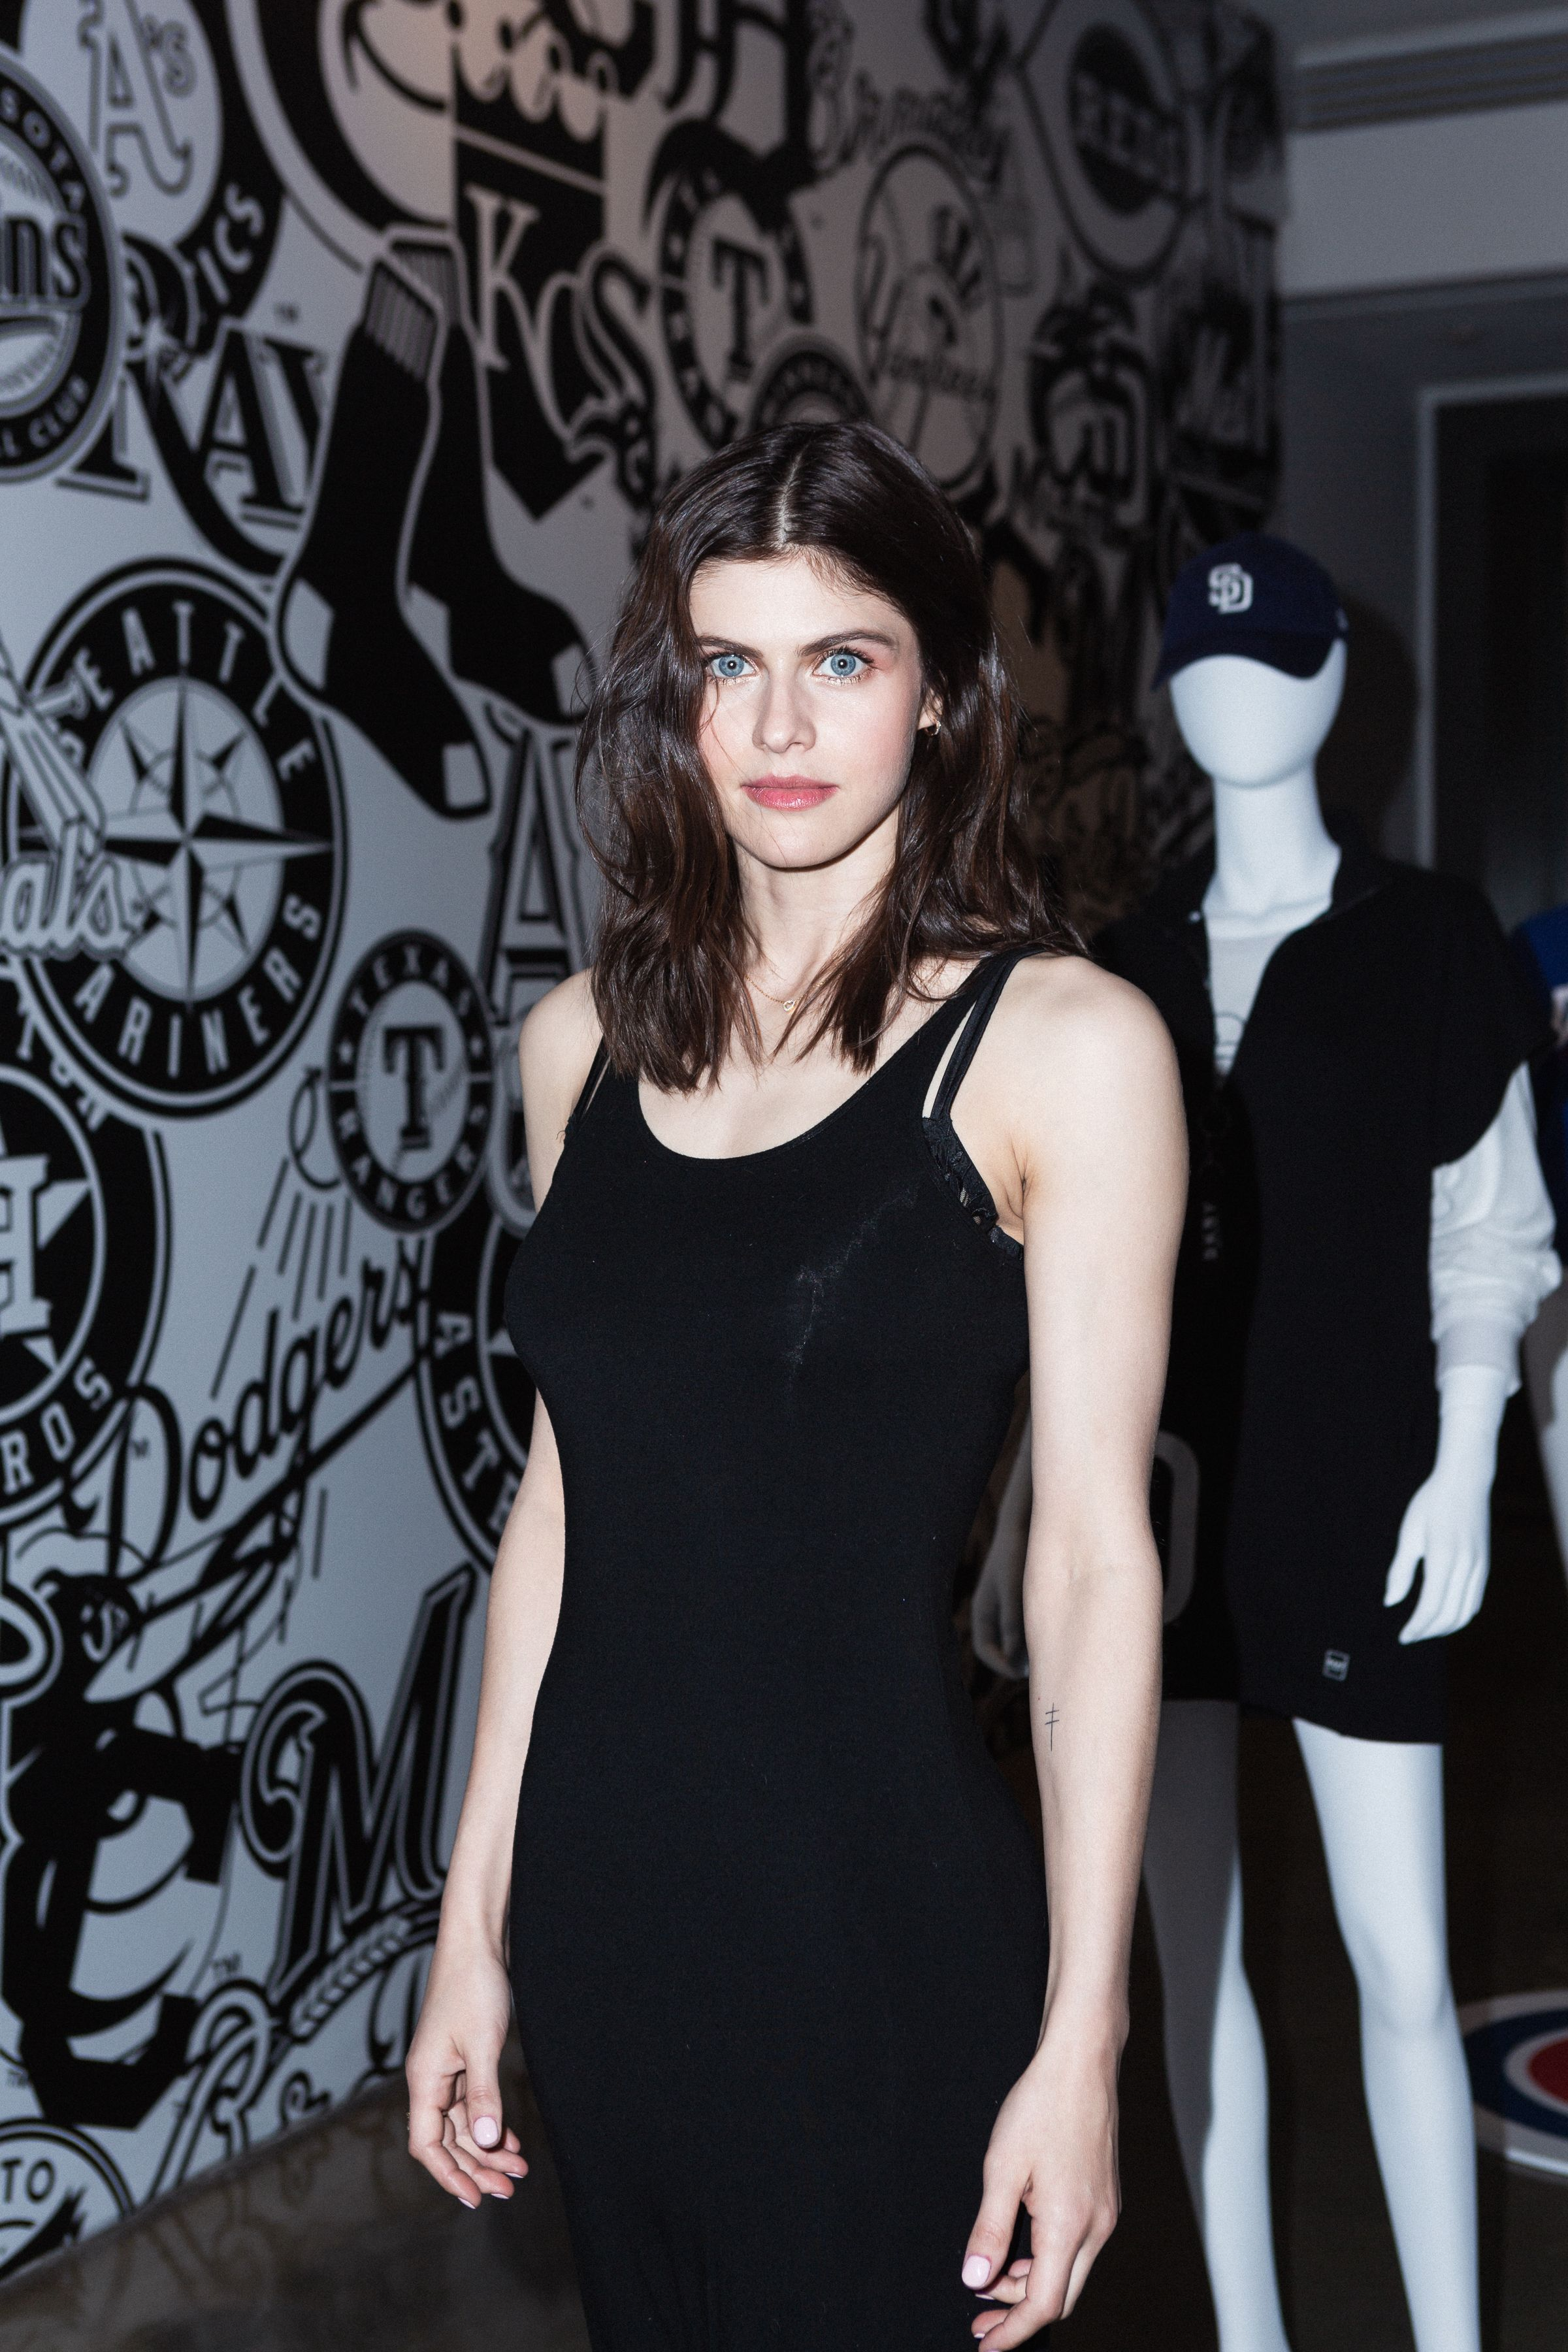 Alexandra Daddario Alexandra Daddario celebrates the launch of the DKNY x MLB capsule collection at Milk Gallery in NYC.